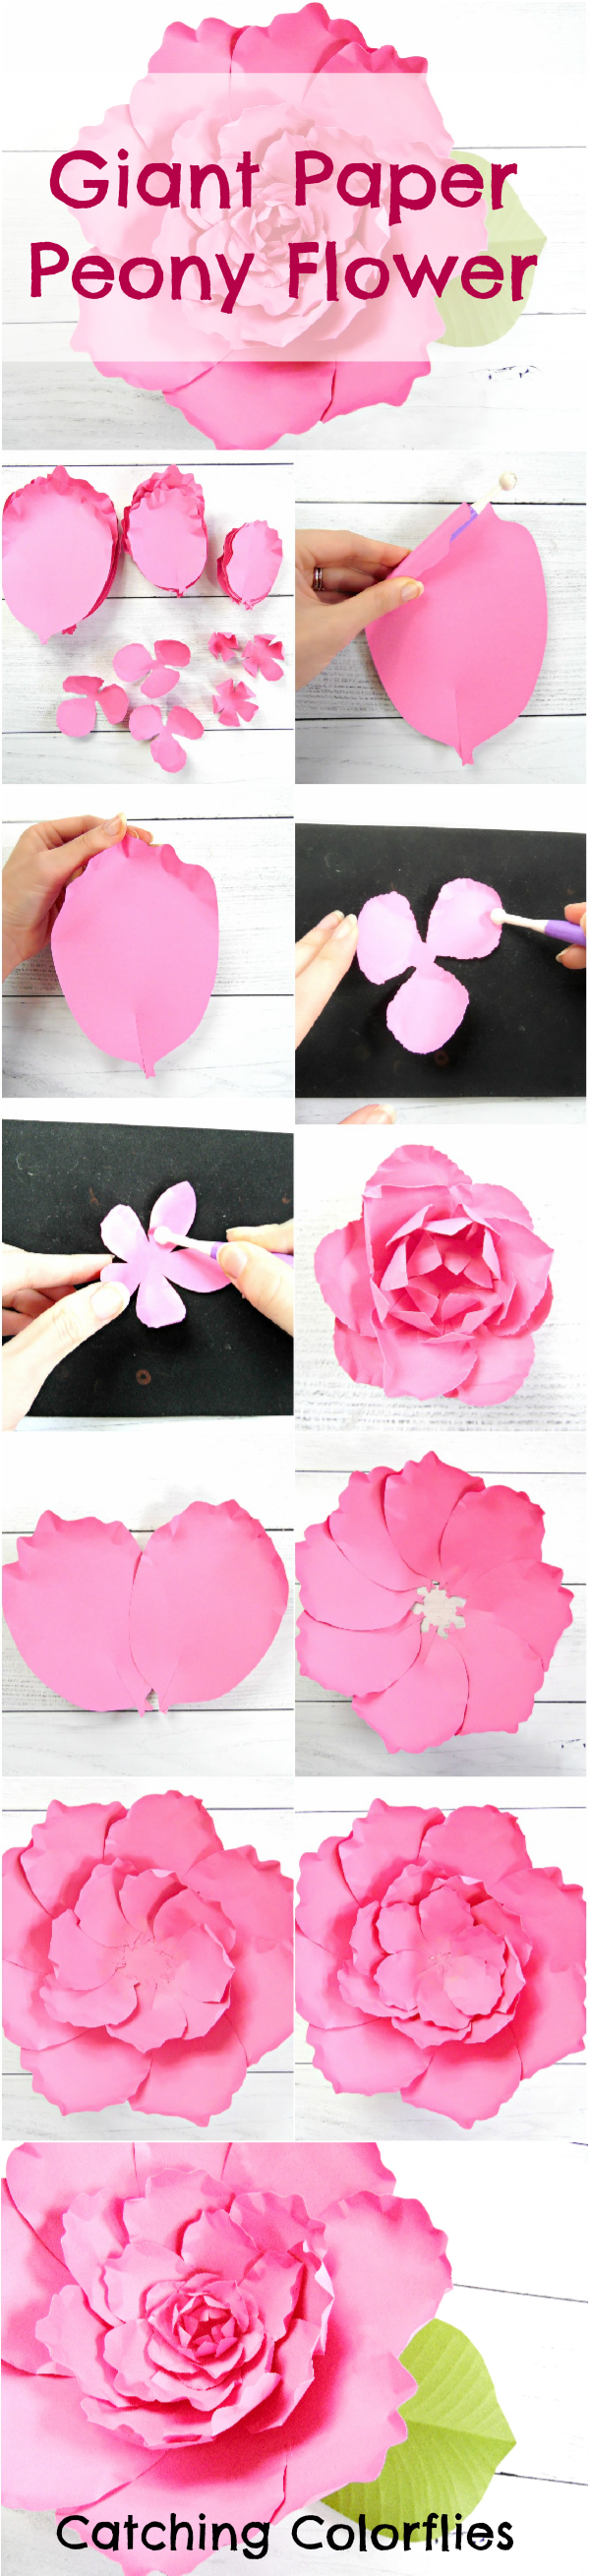 Giant paper flower peony how to make large paper peony flowers giant paper flower peony how to make large paper peony flowers printable flower templates mightylinksfo